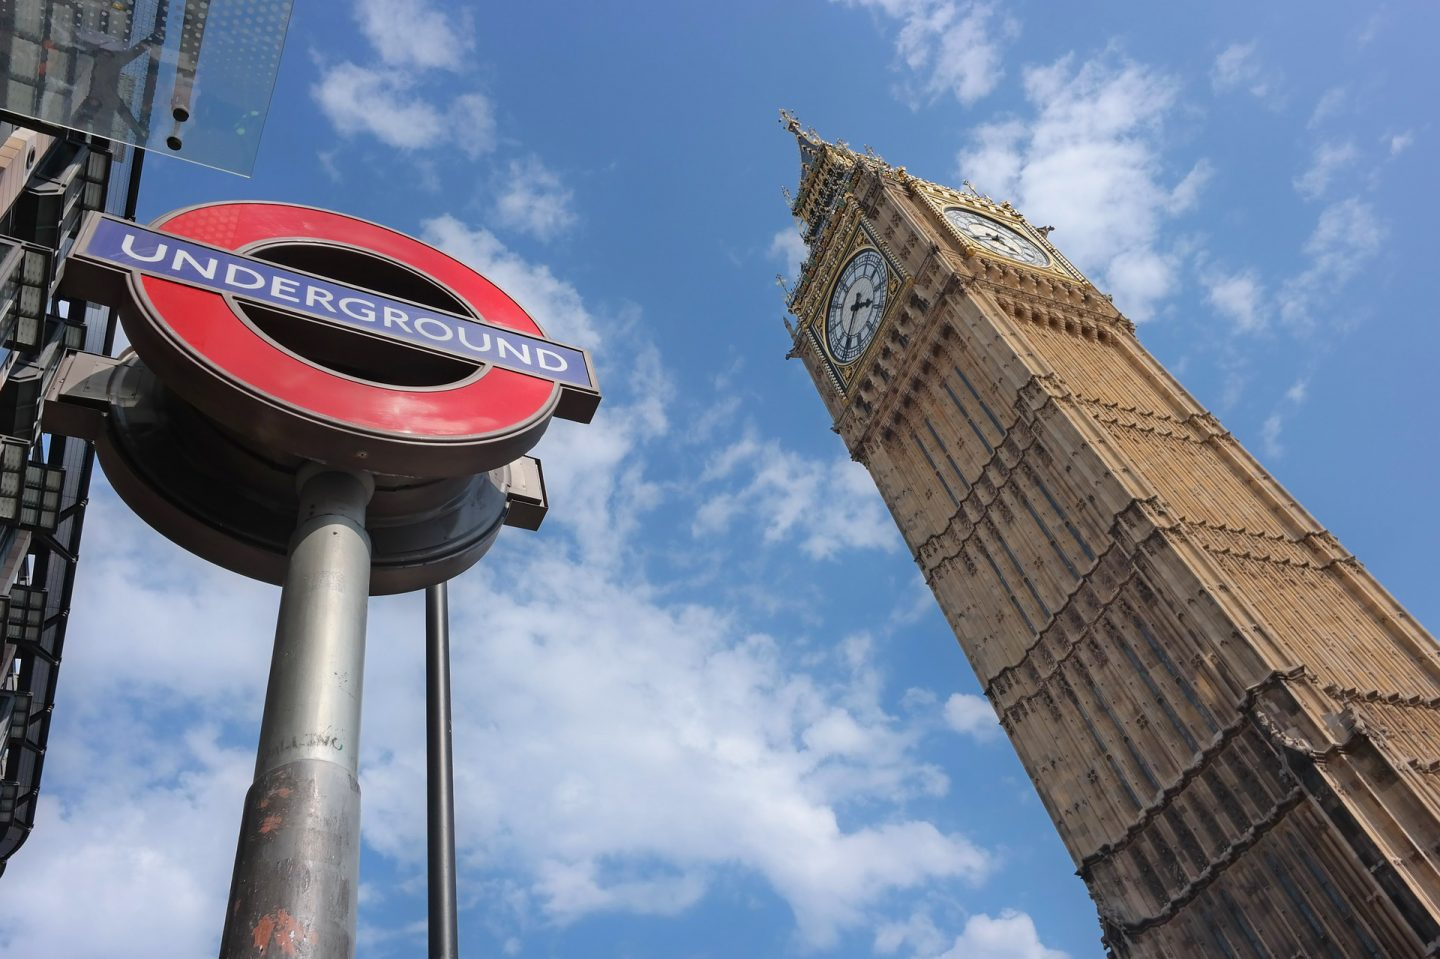 How to get around London with kids: Oyster card, Travel card or Contactless?